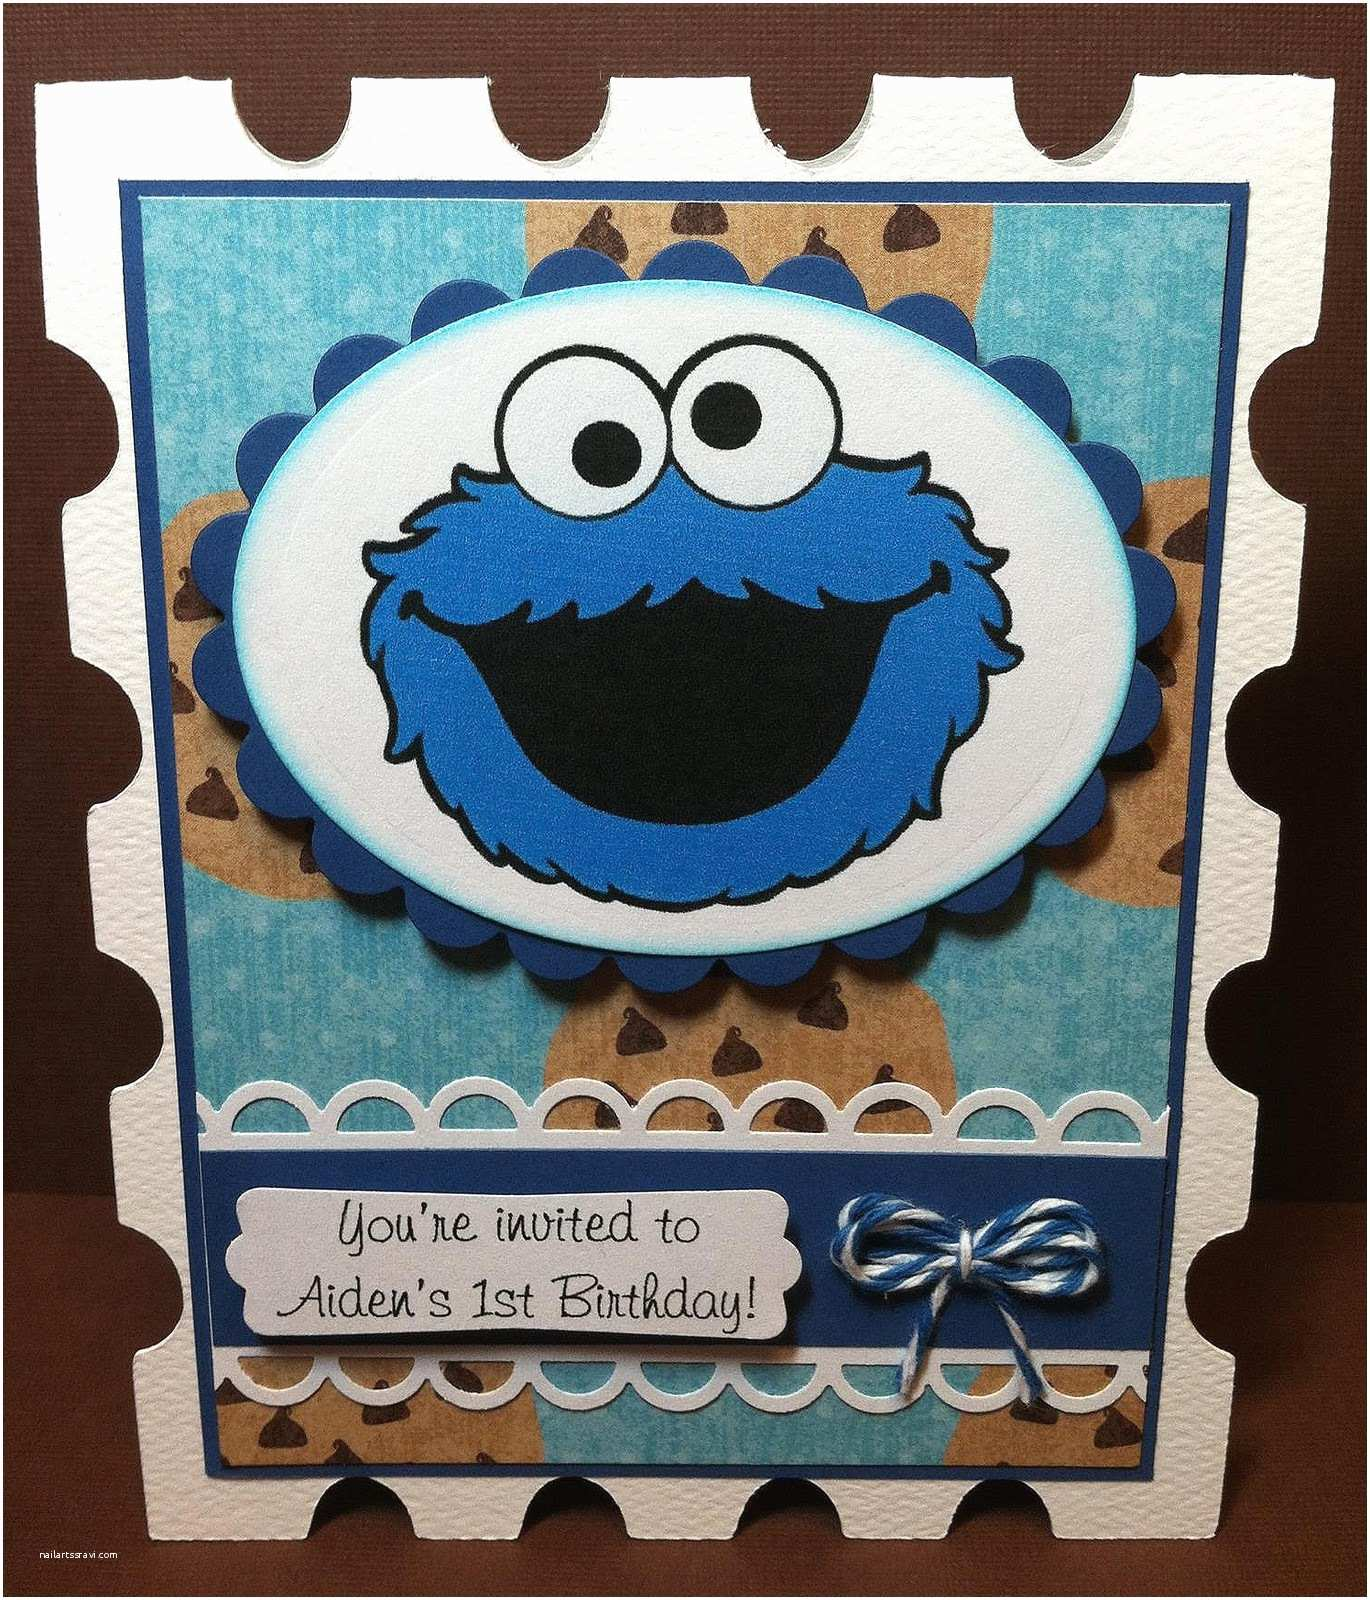 Cookie Monster Birthday Invitations Paper Crafts by Candace Hello Kitty & Cookie Monster